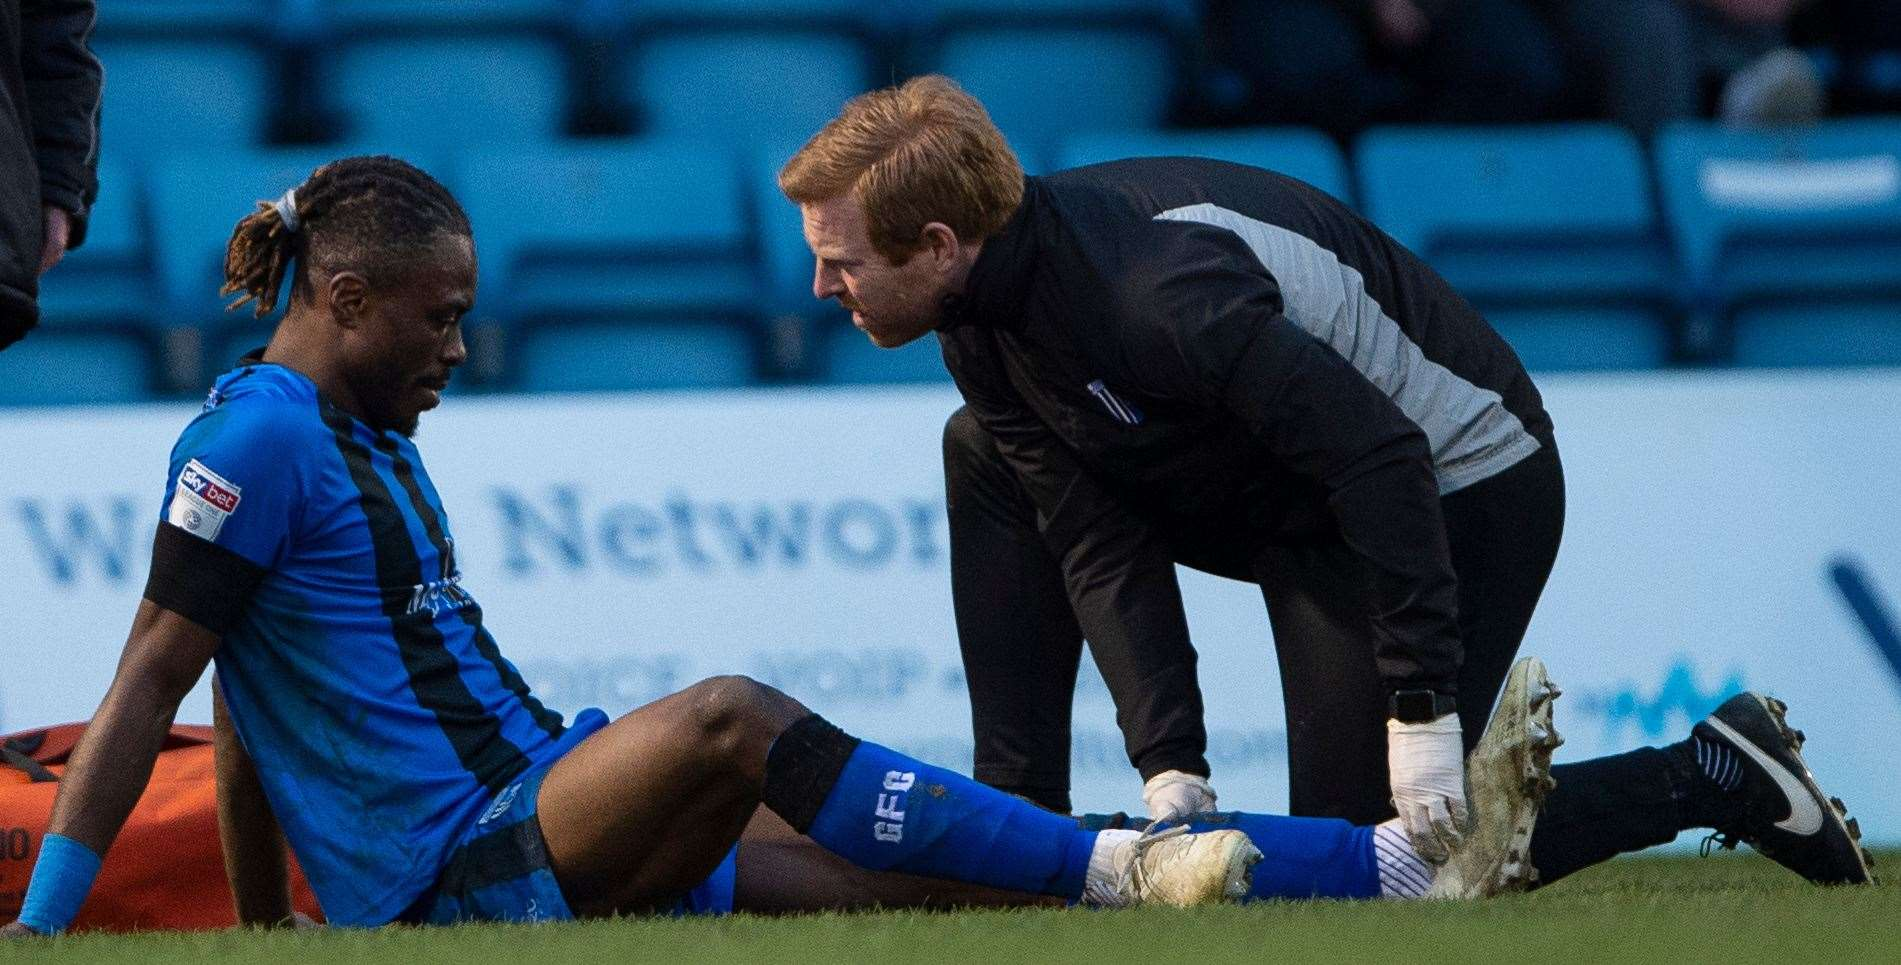 Gabriel Zakuani's ankle gets treatment during the match against Barnsley Picture: Ady Kerry